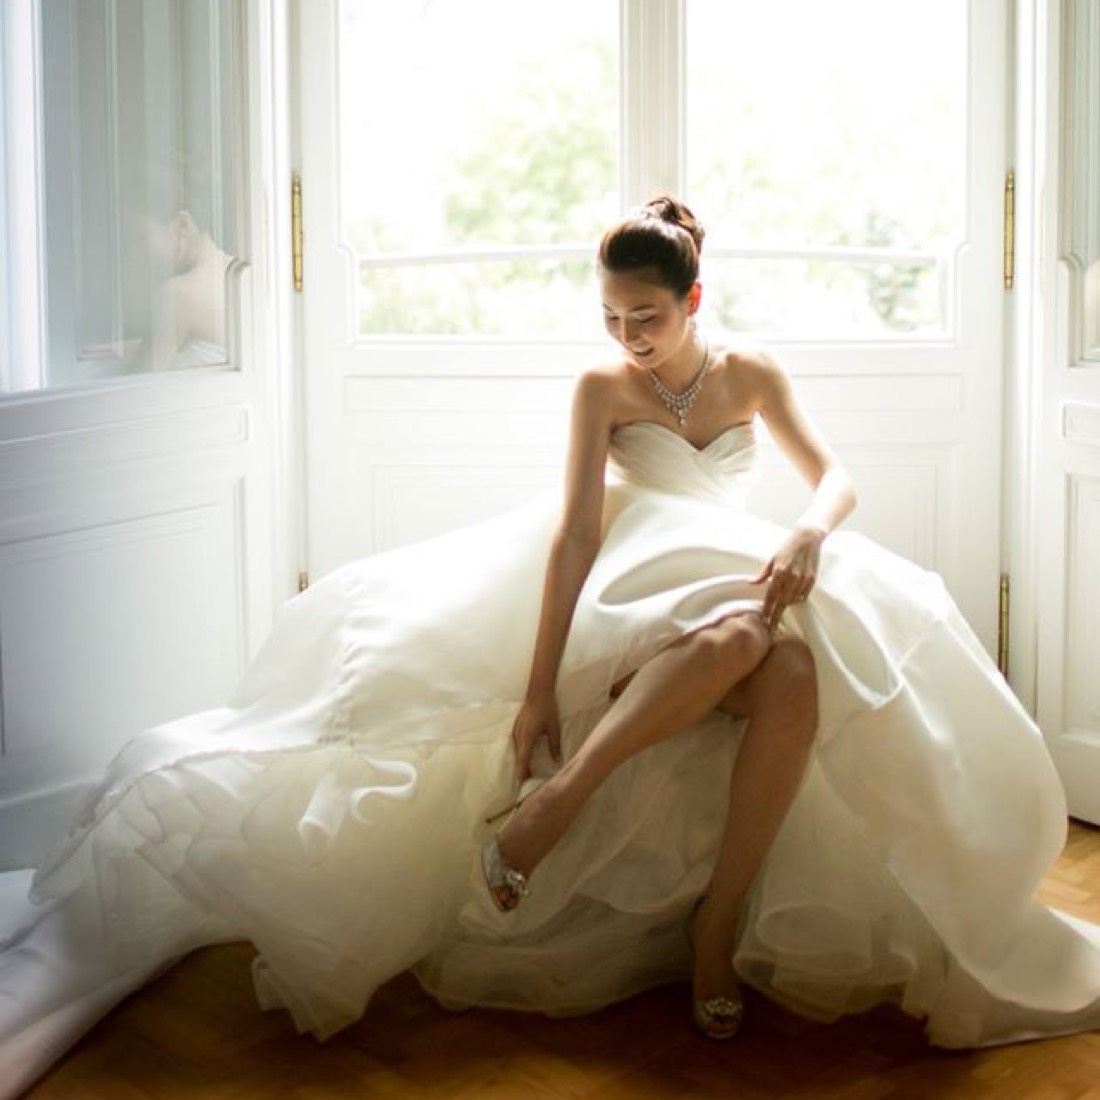 Cinderella's Day - Wedding and Event Planning - Wedding Budapest, Hungary